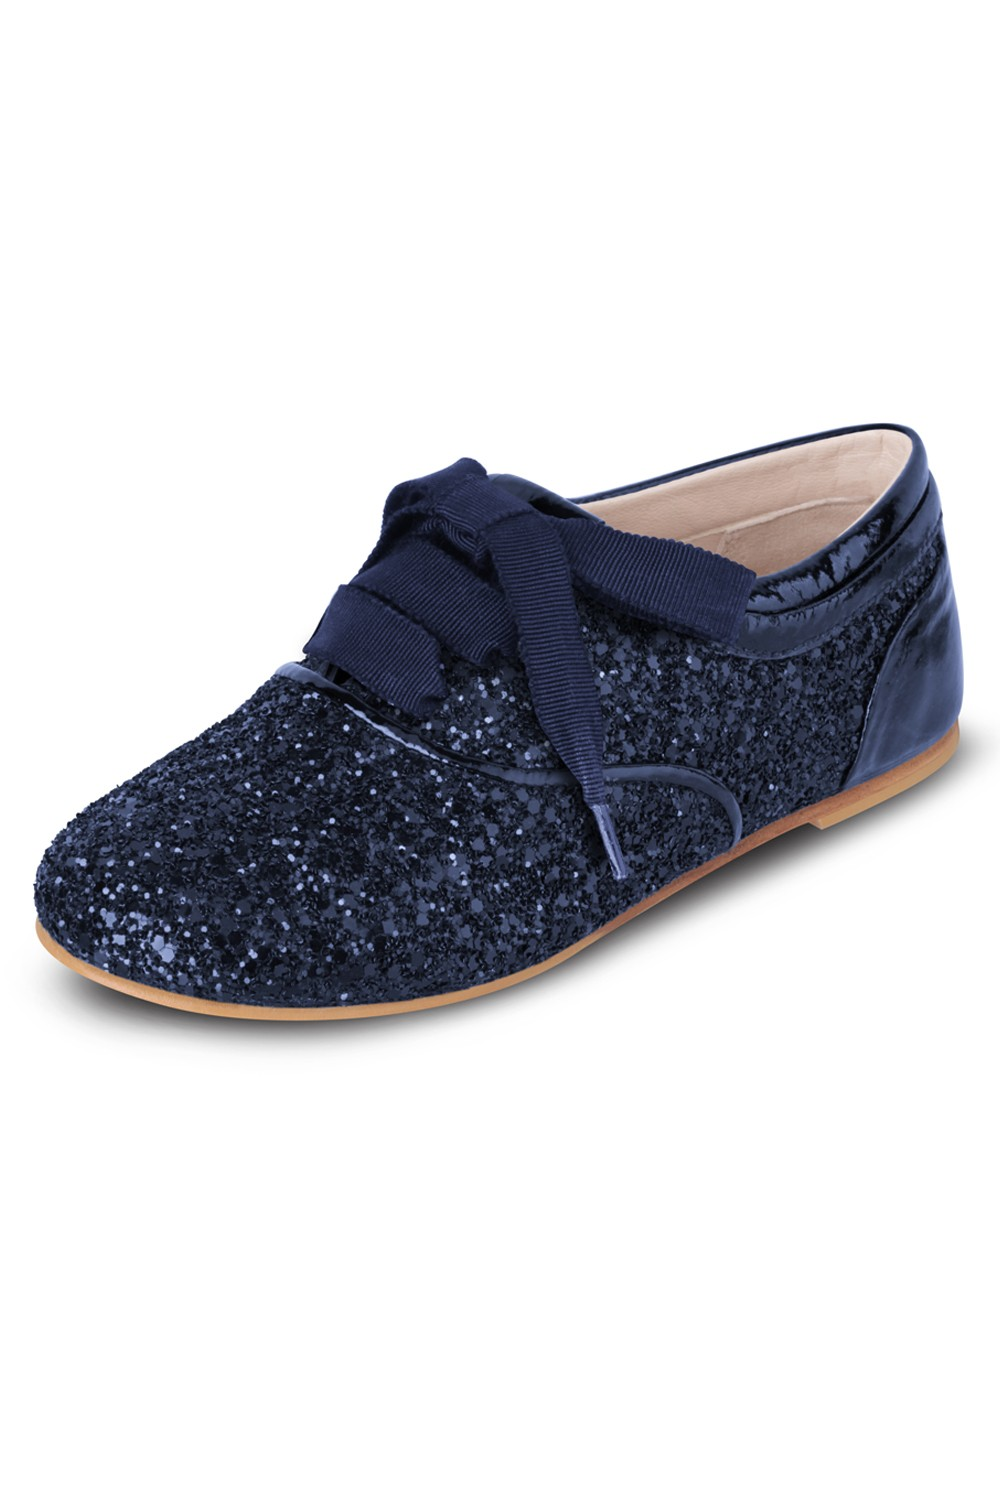 Aurore Girls Fashion Shoes